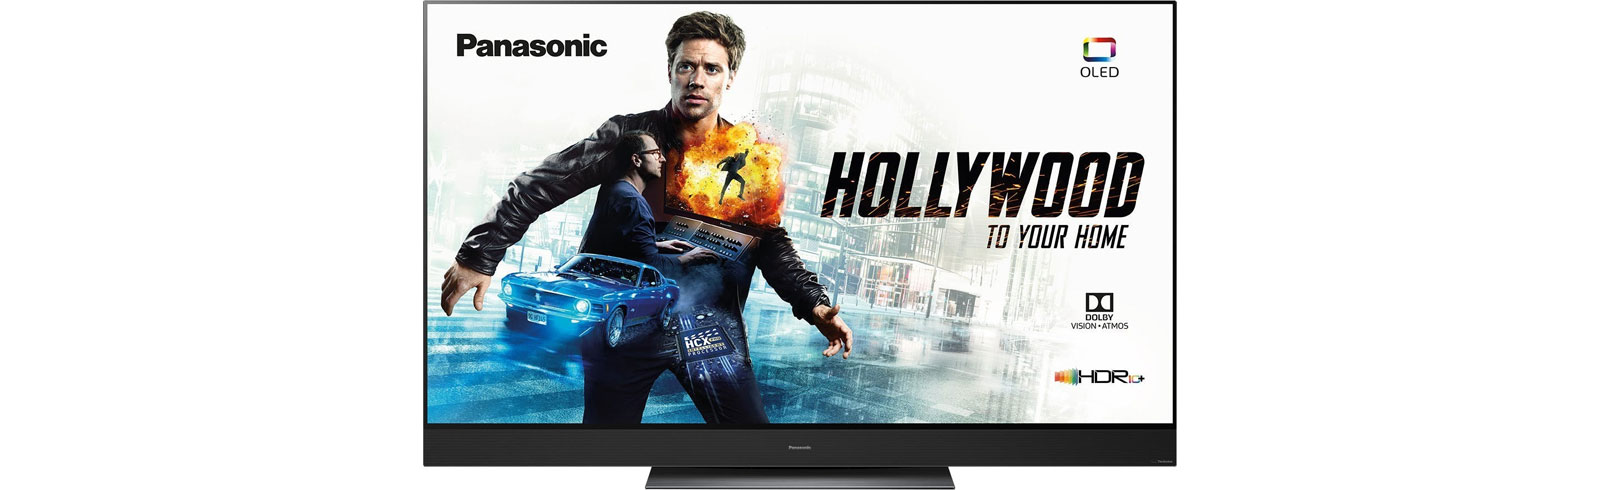 Panasonic's GZ2000 4K UHD OLED TVs are now available in Europe